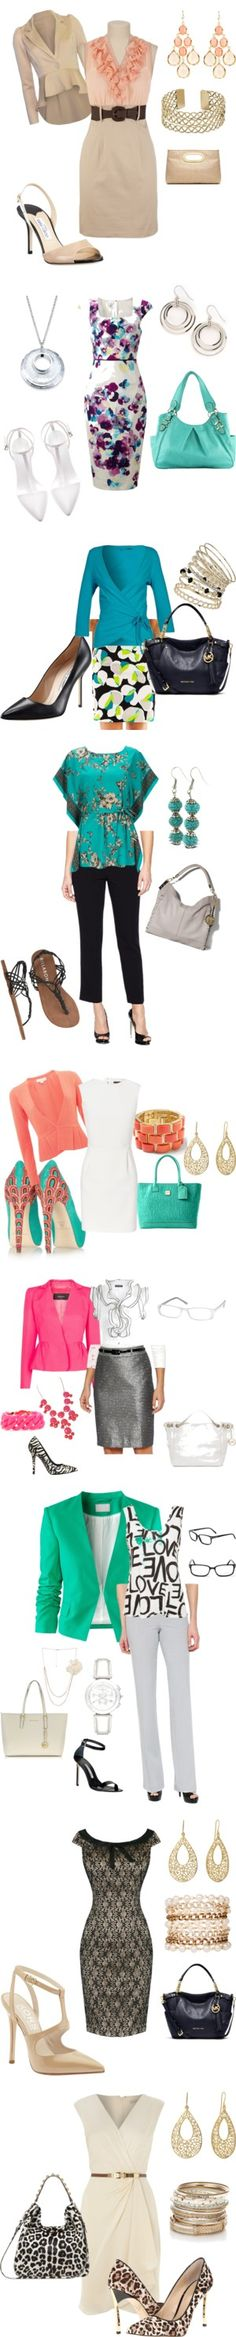 """""""Proffessional Outfits"""" by tammy-seelman on Polyvore"""